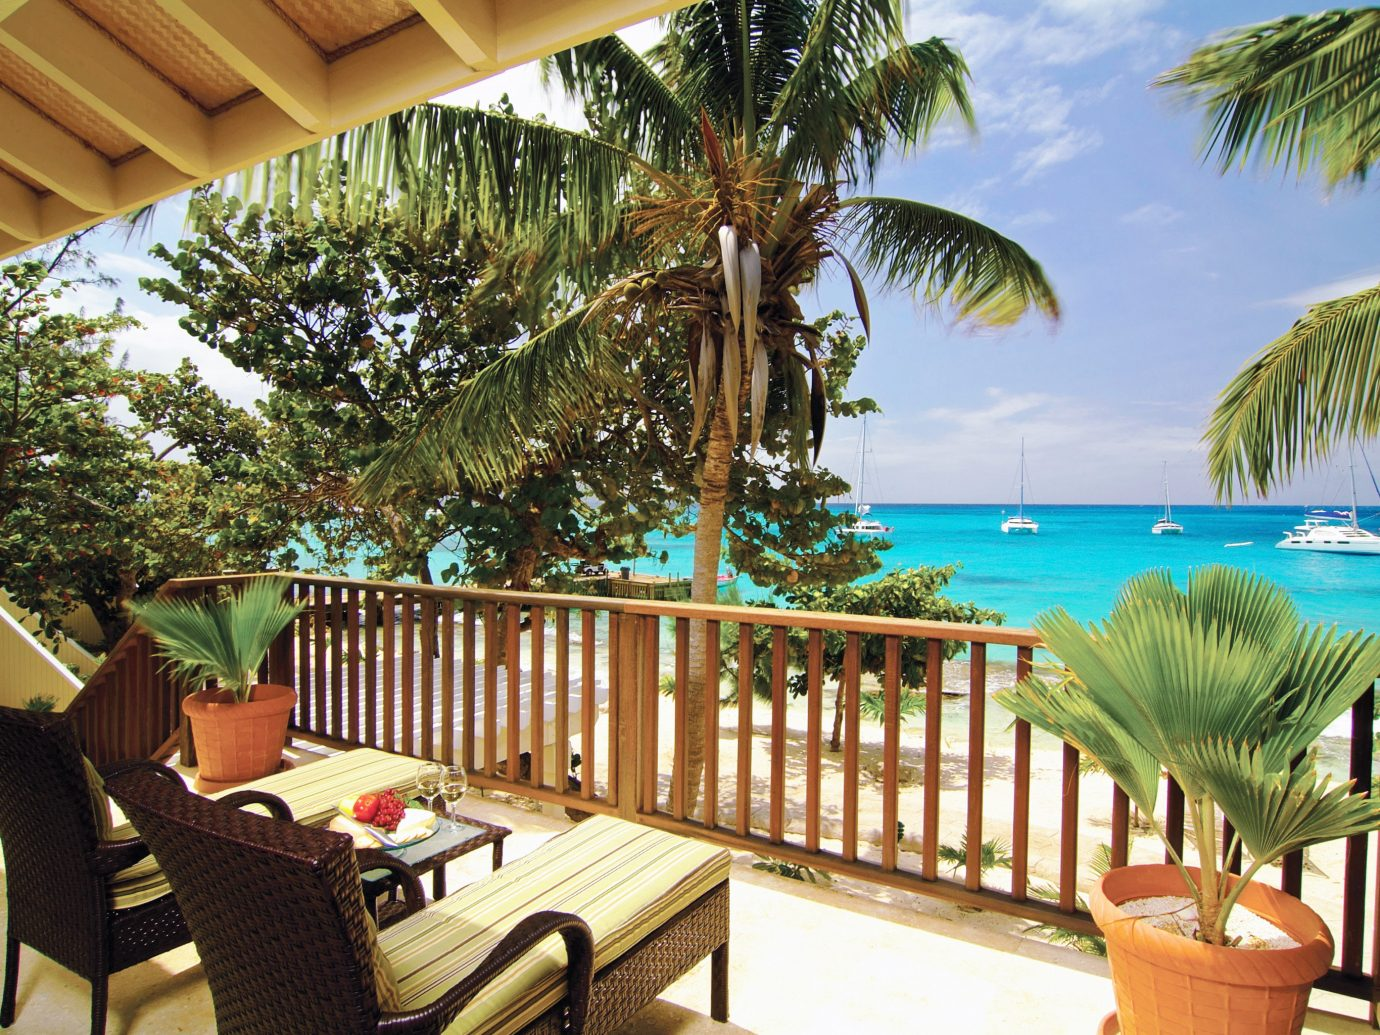 Beachfront Deck Hotels Play Resort tree chair property leisure vacation caribbean estate Villa furniture real estate swimming pool Dining decorated eco hotel plant palm area